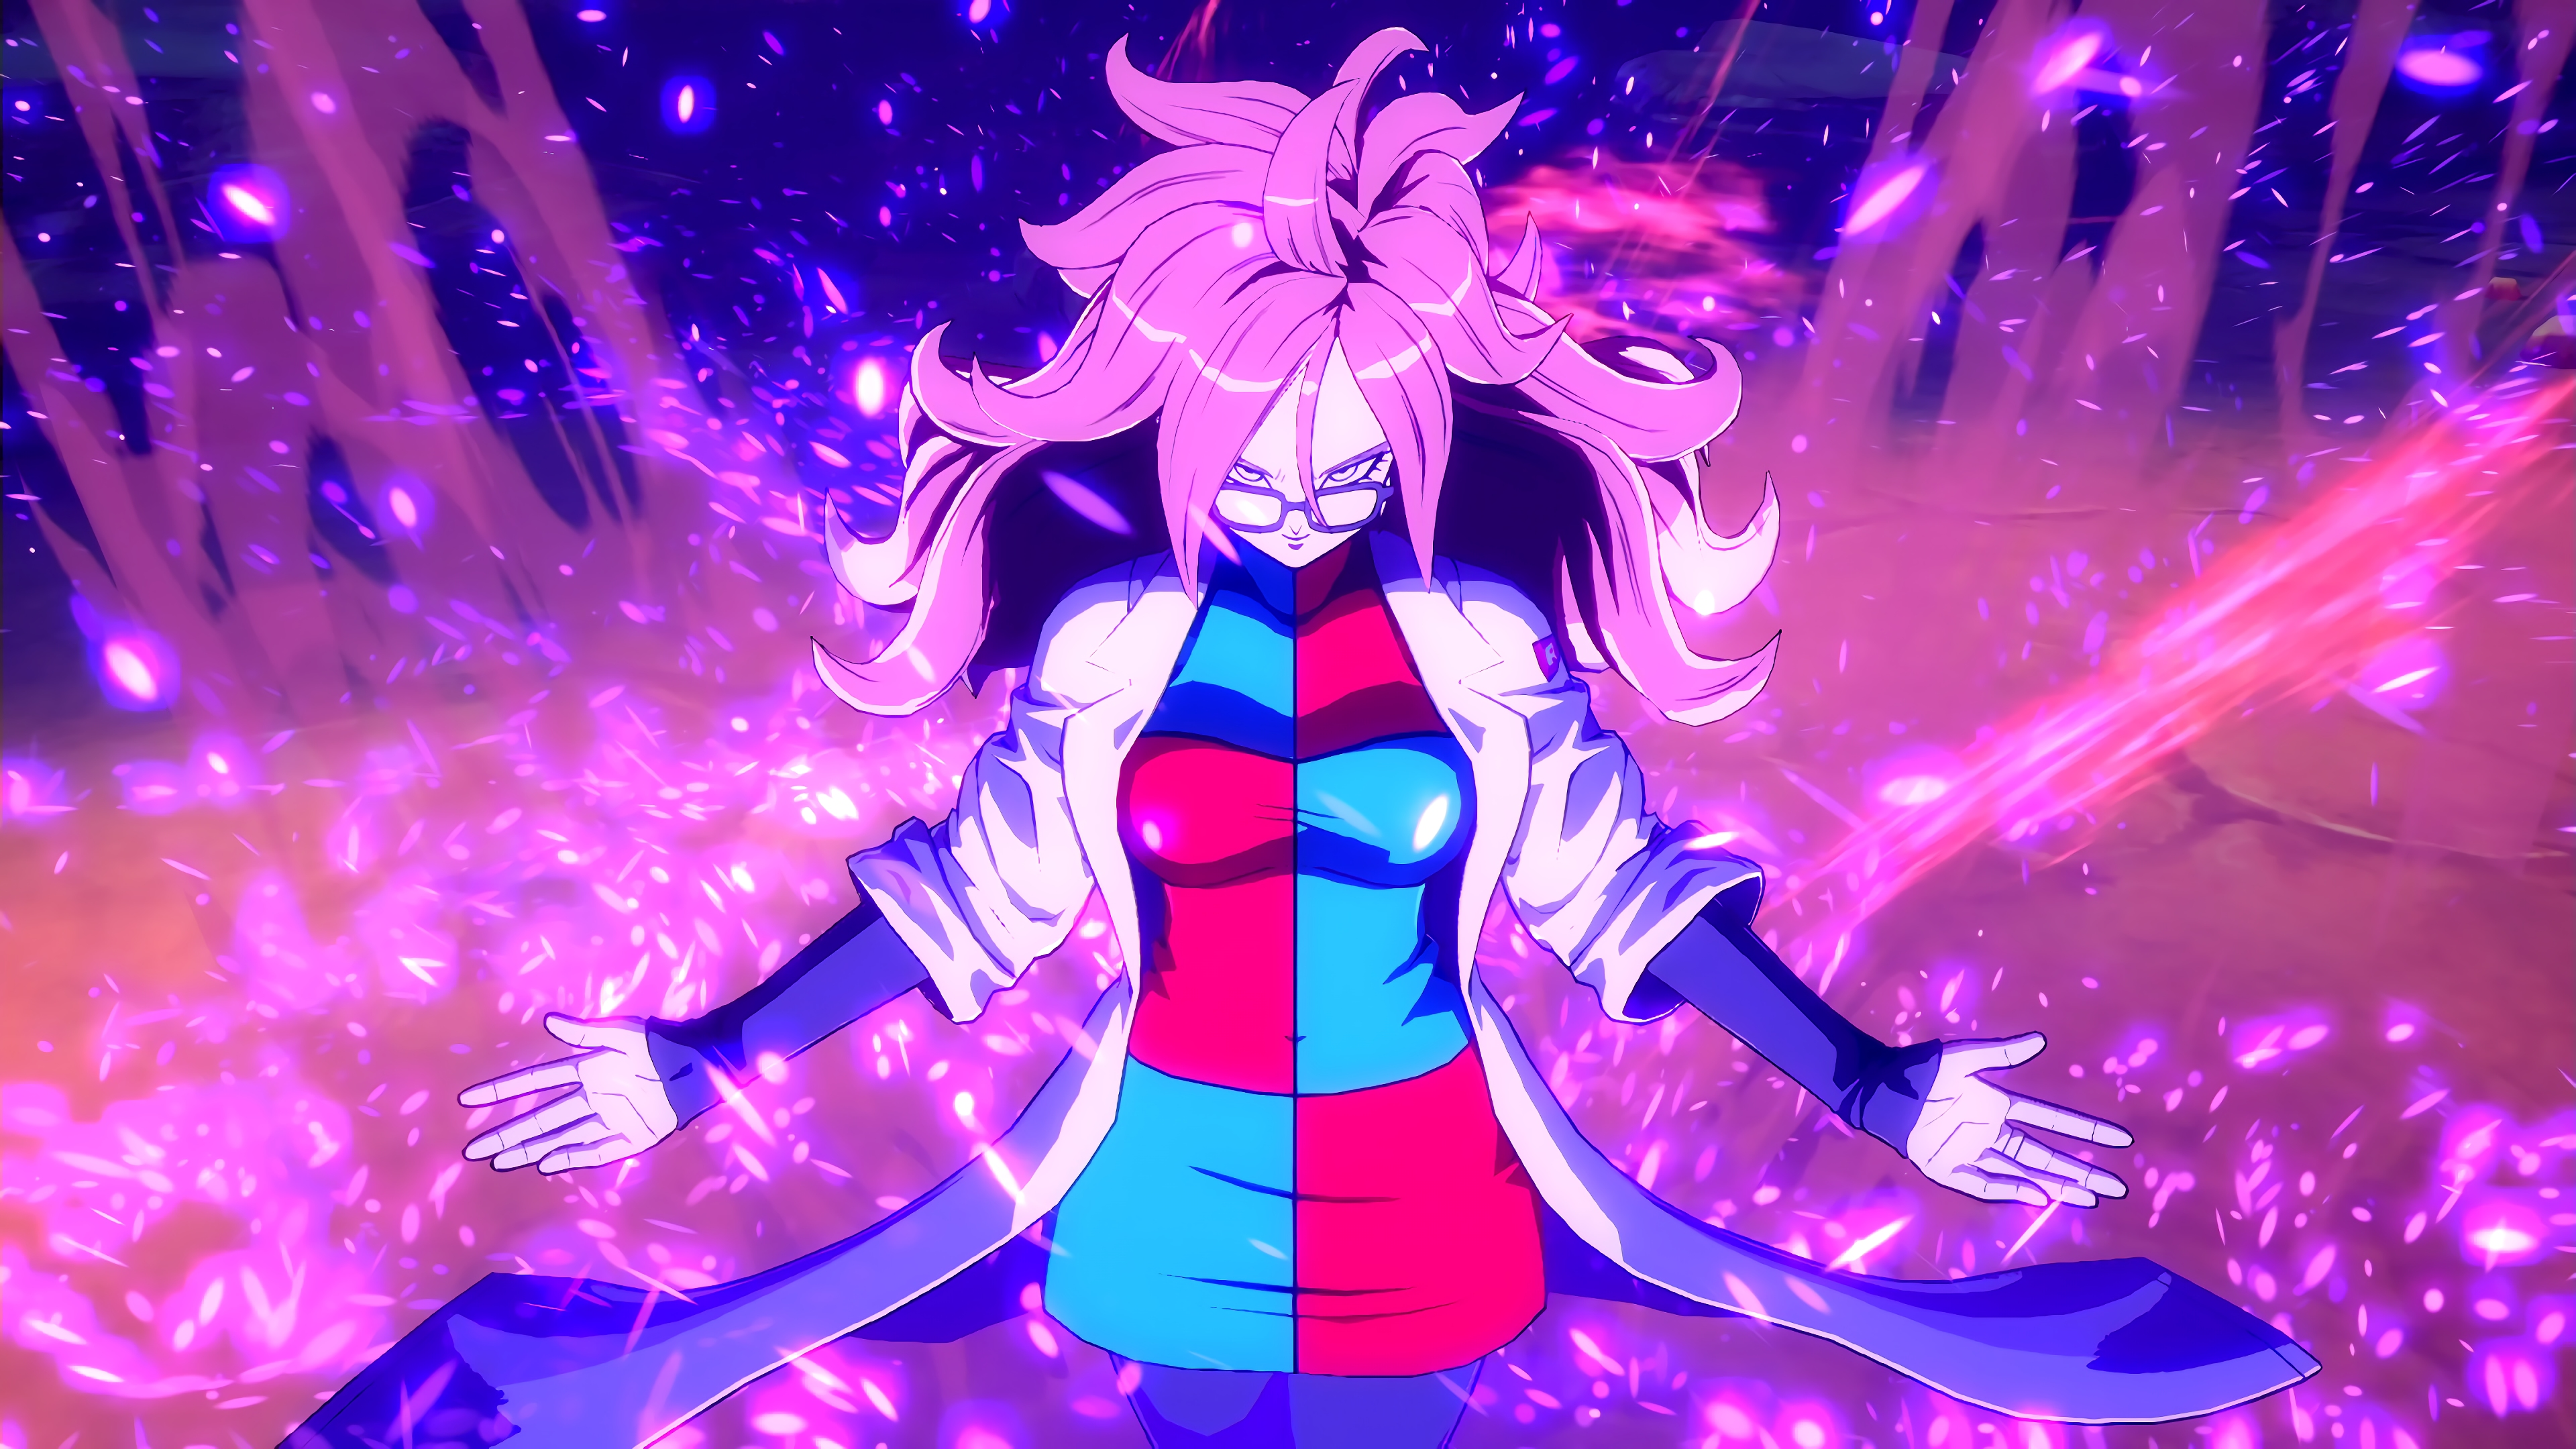 800x1280 4k android 21 dragon ball fighter z nexus 7samsung galaxy published on april 2 2018 original resolution voltagebd